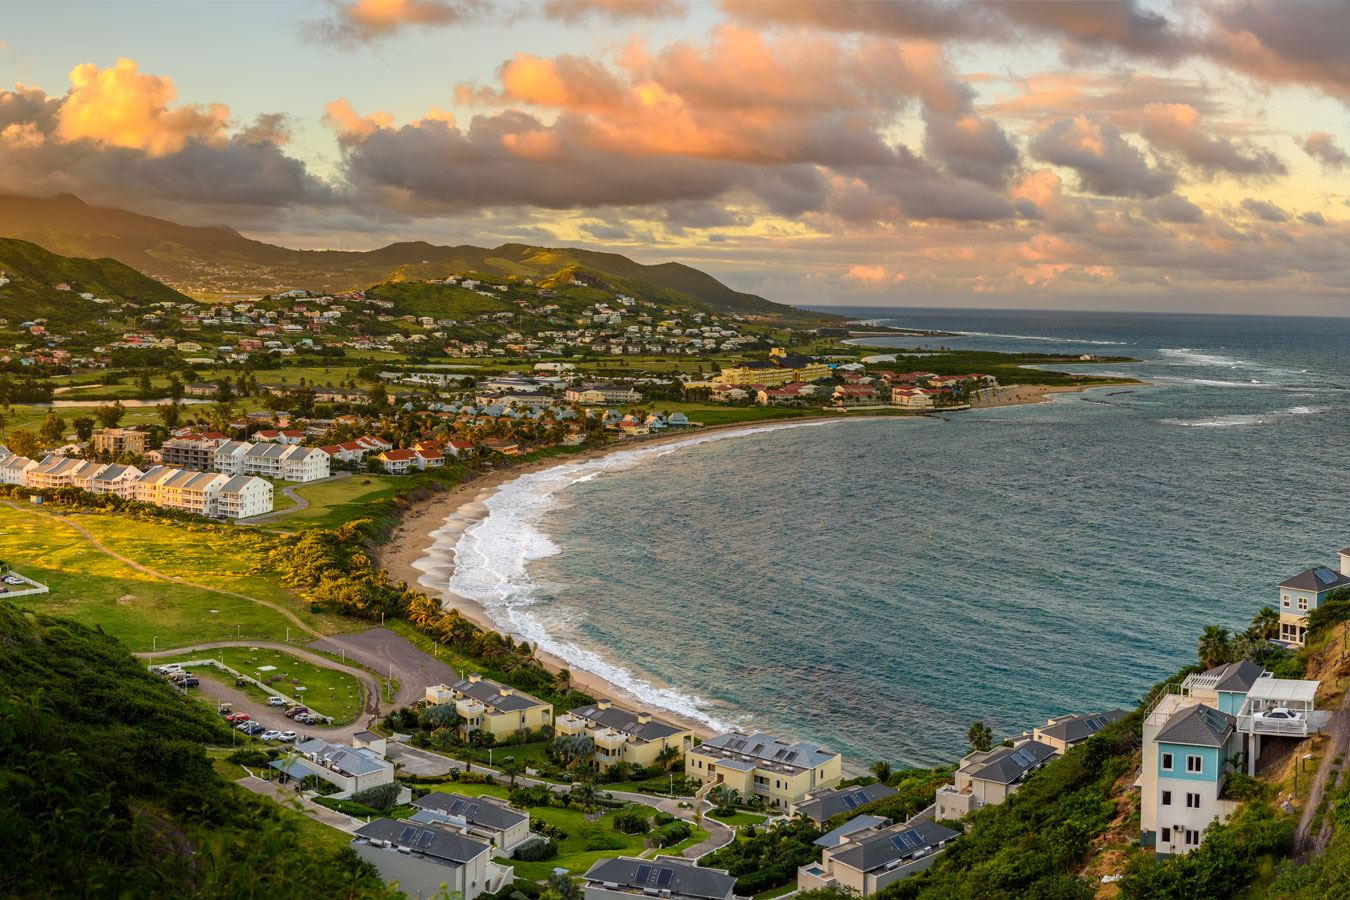 St. Kitts & Nevis offers citizenship at significantly reduced cost